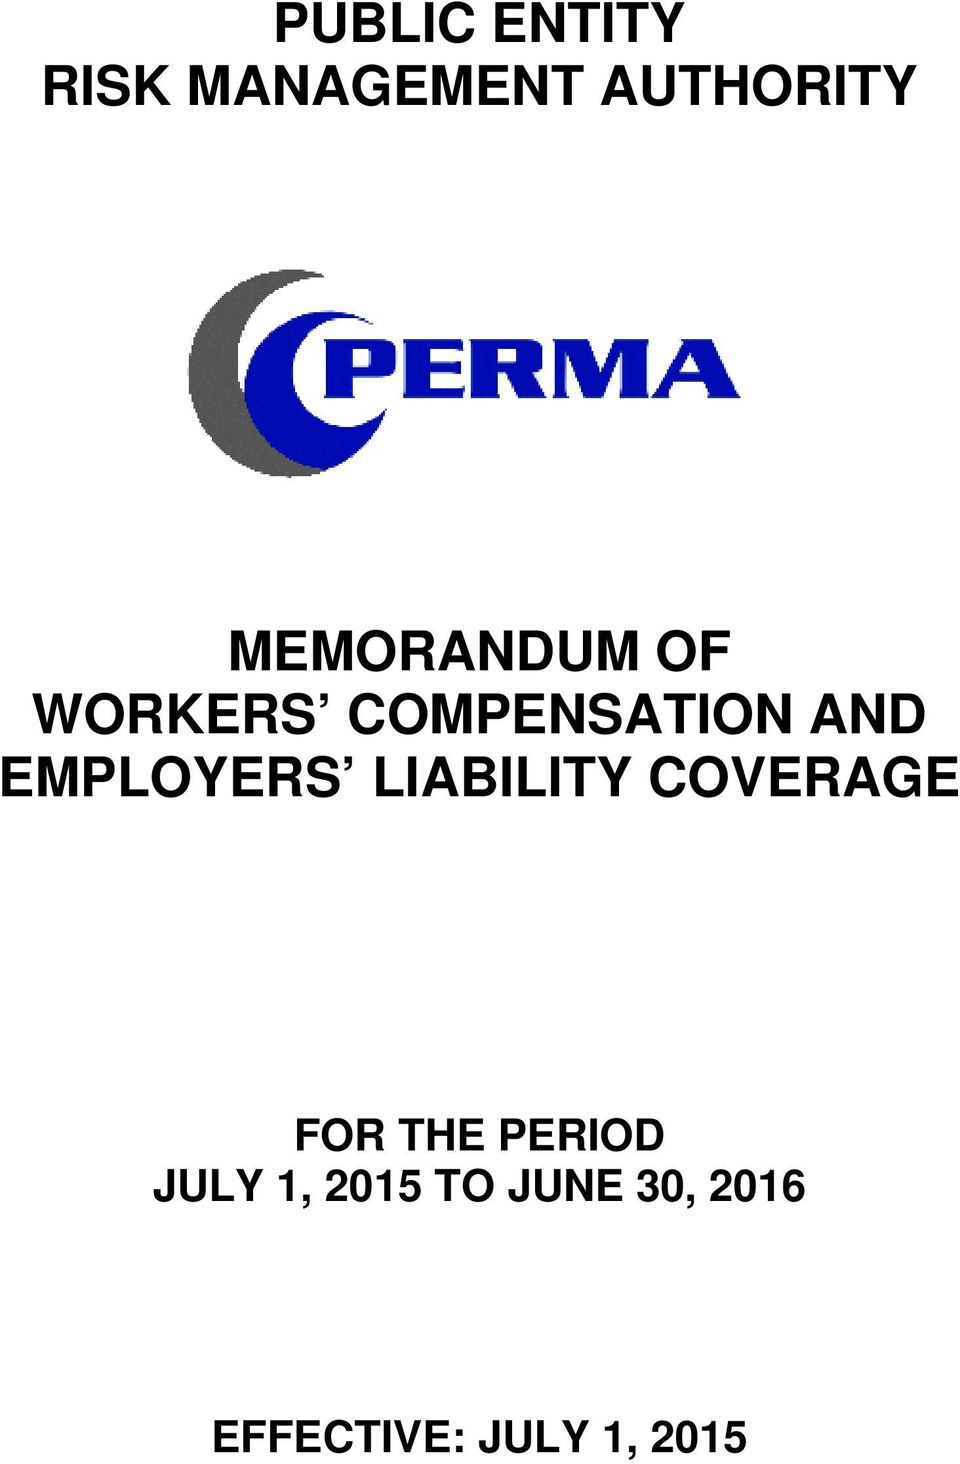 EMPLOYERS LIABILITY COVERAGE FOR THE PERIOD